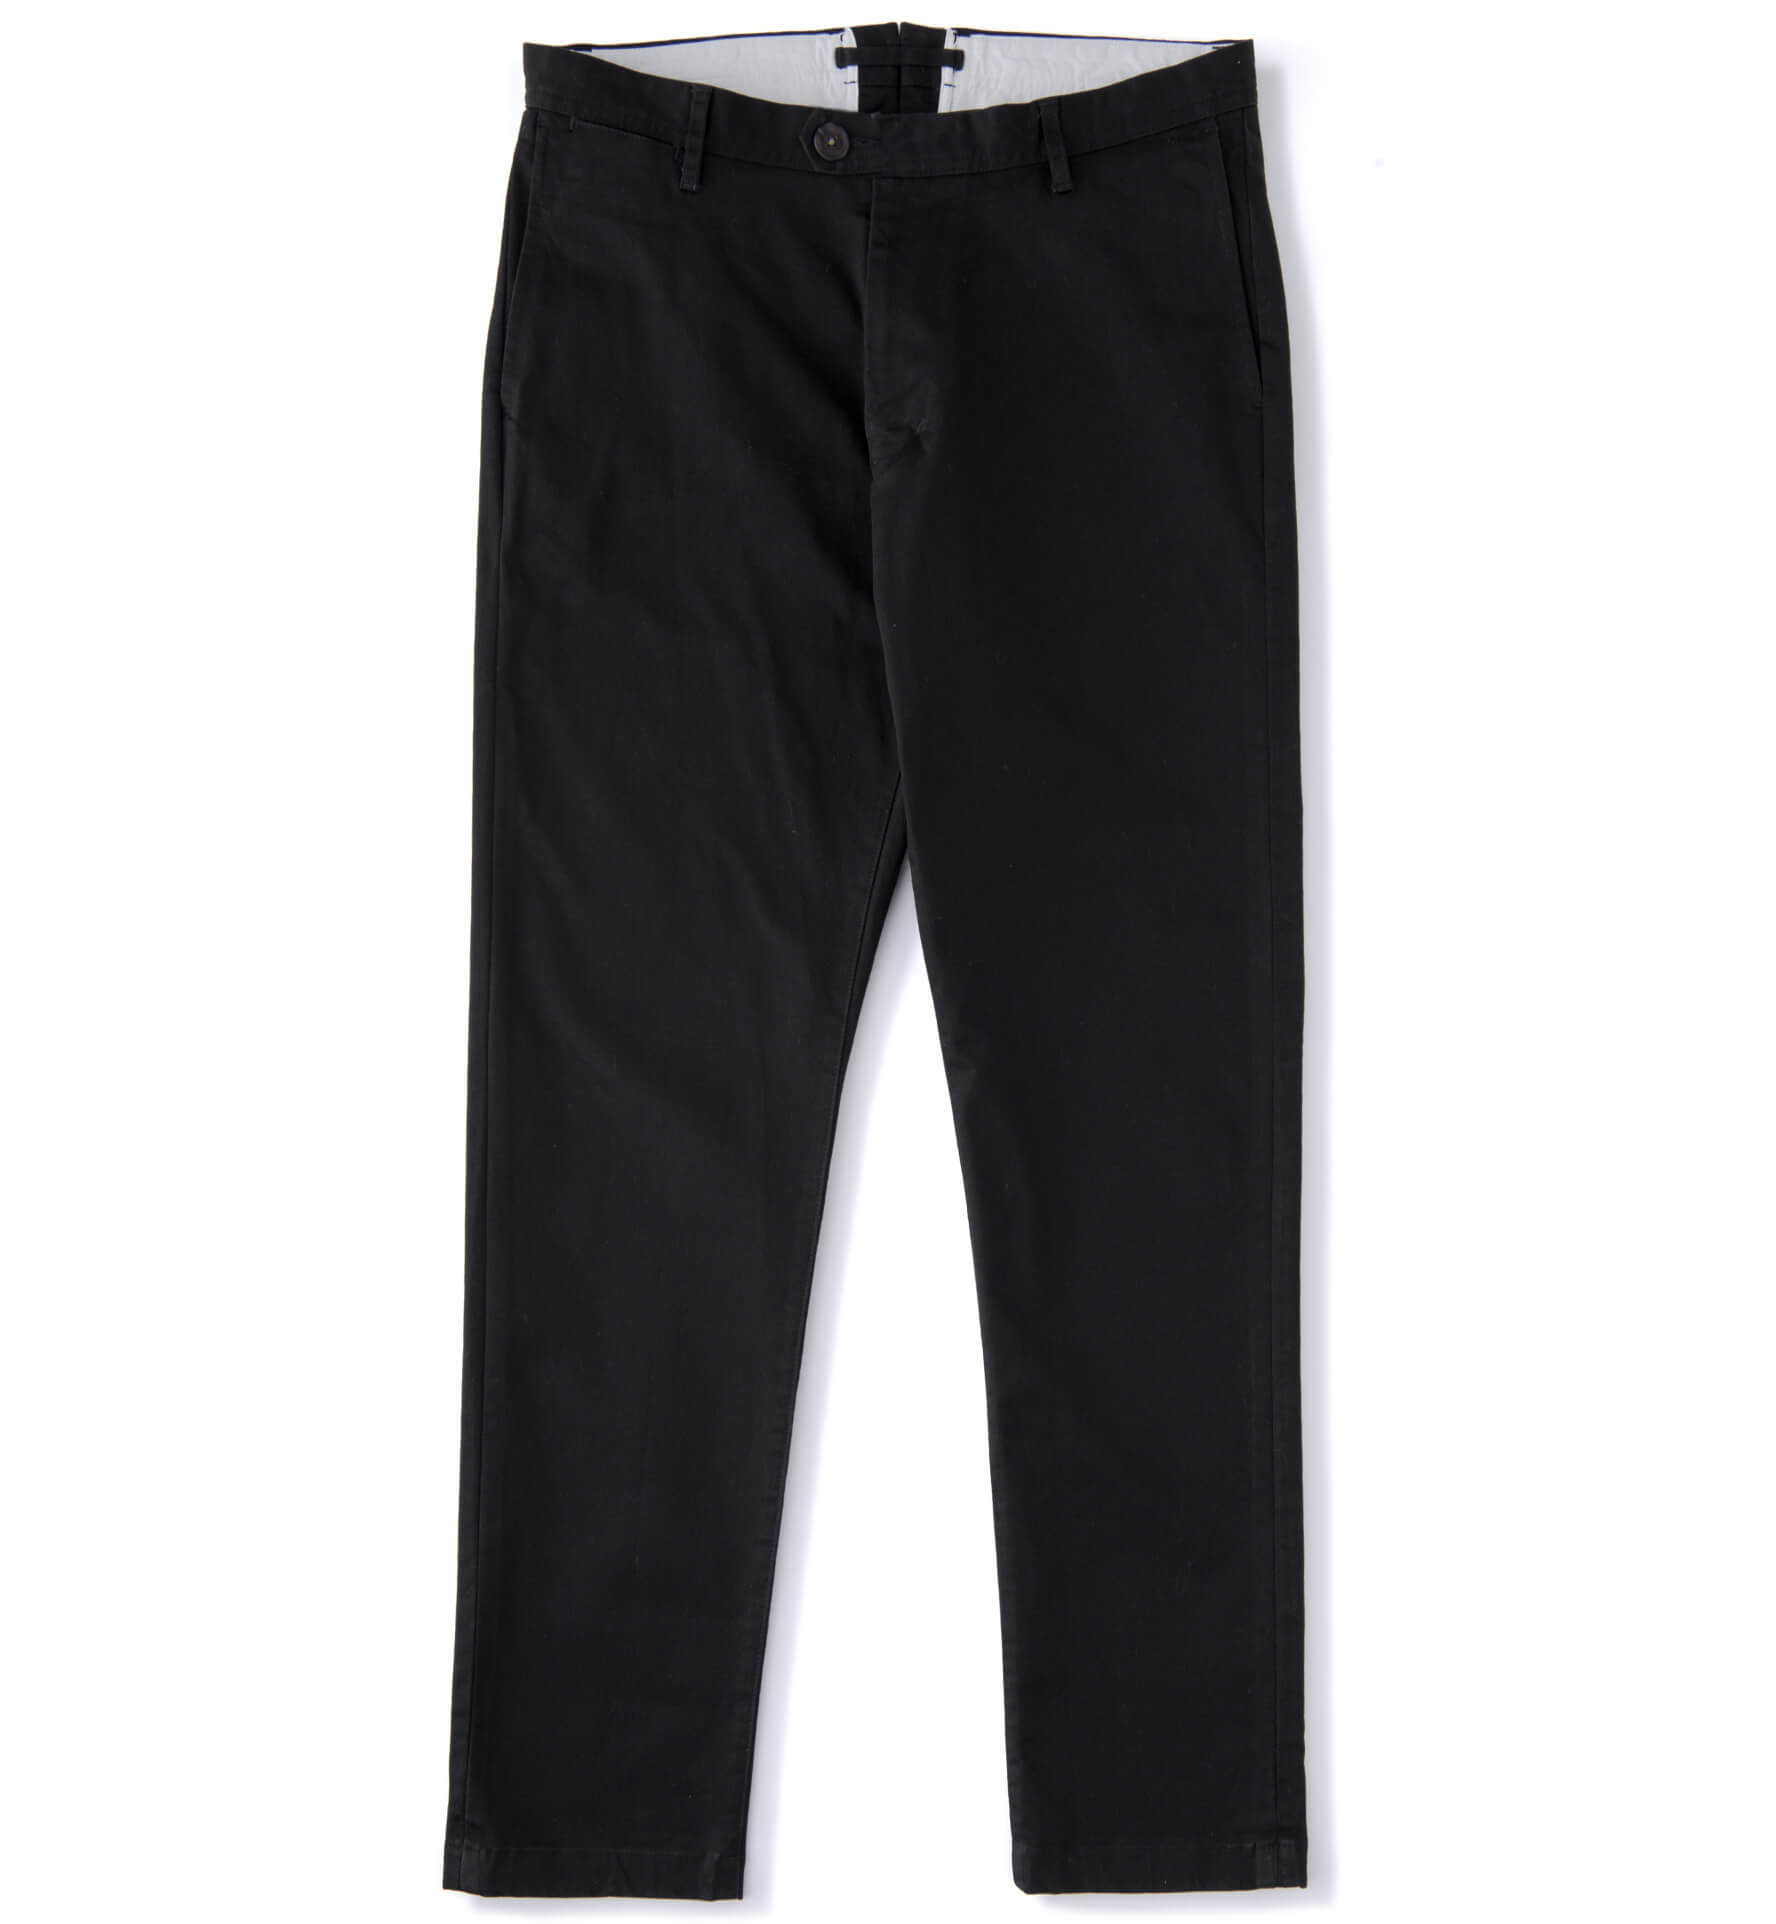 Zoom Image of Bowery Black Stretch Heavy Cotton Chino